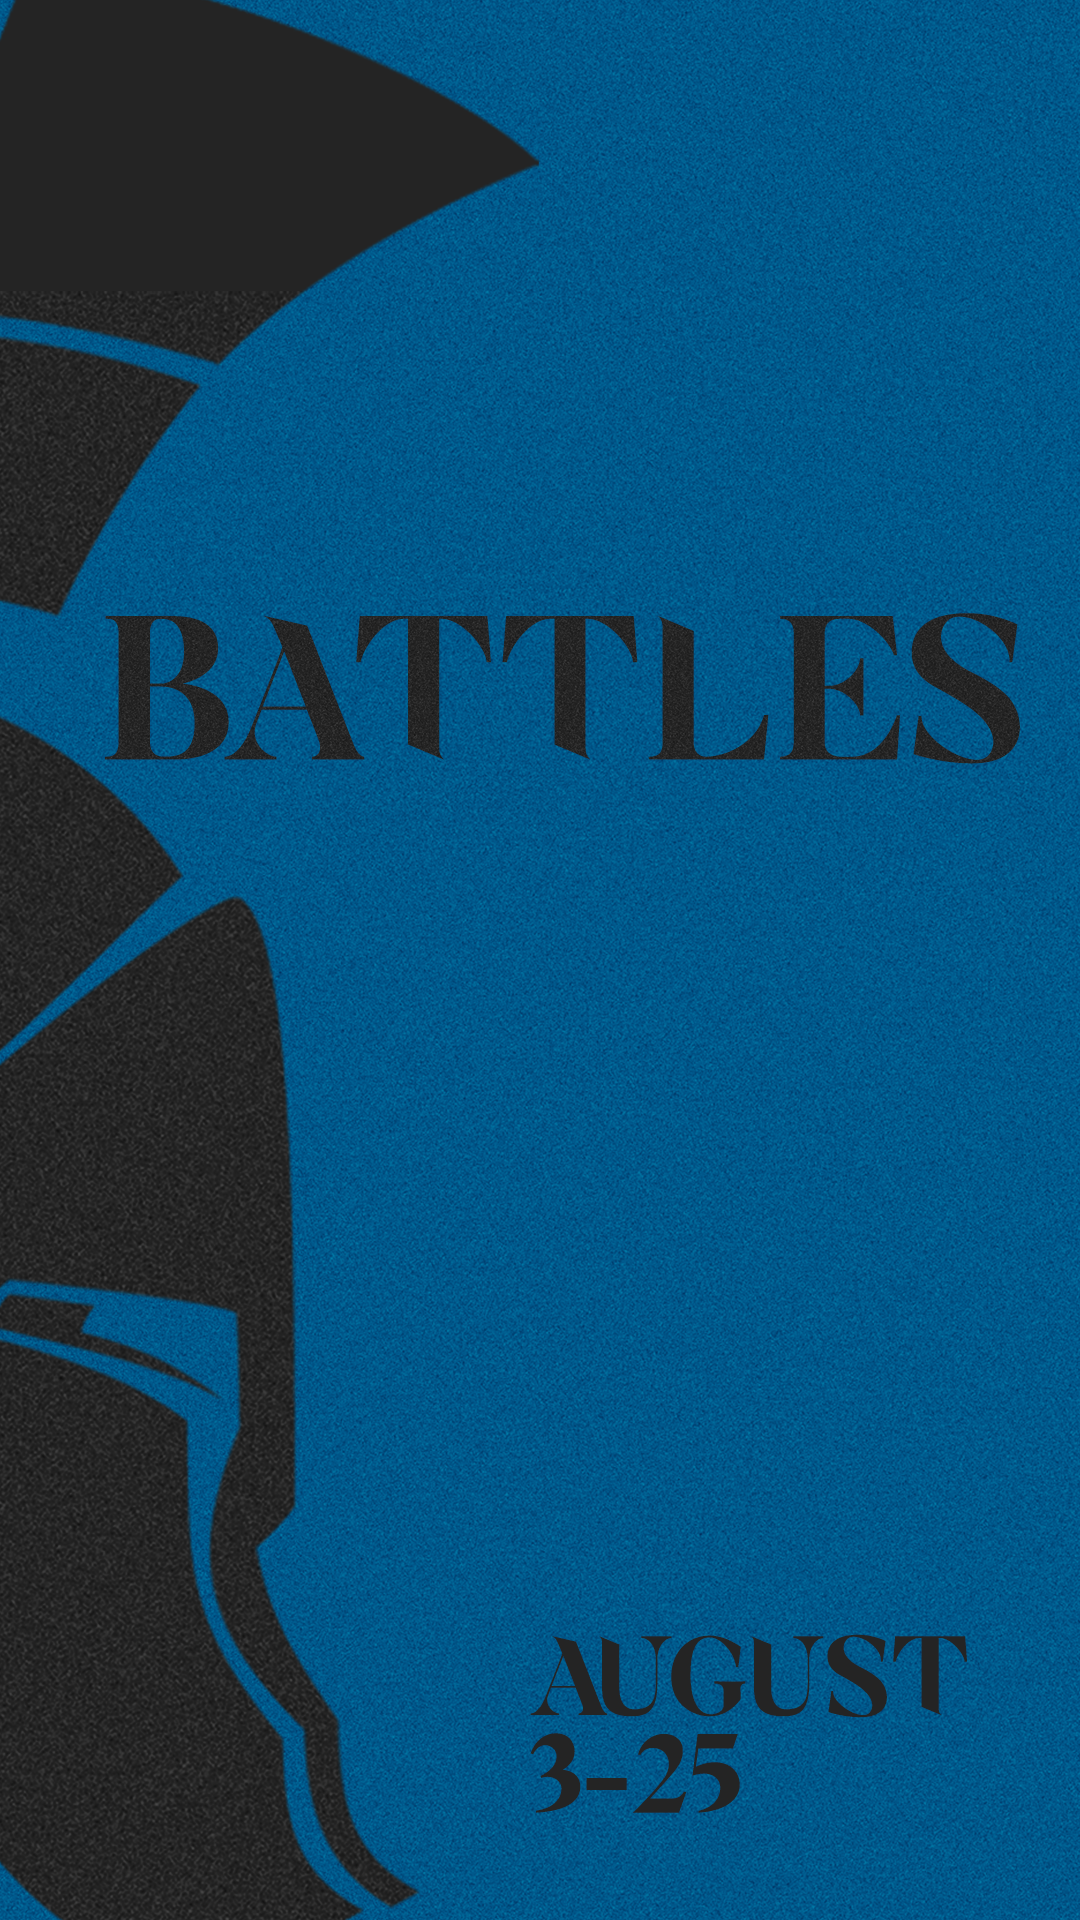 Battles_Story-DATE.png